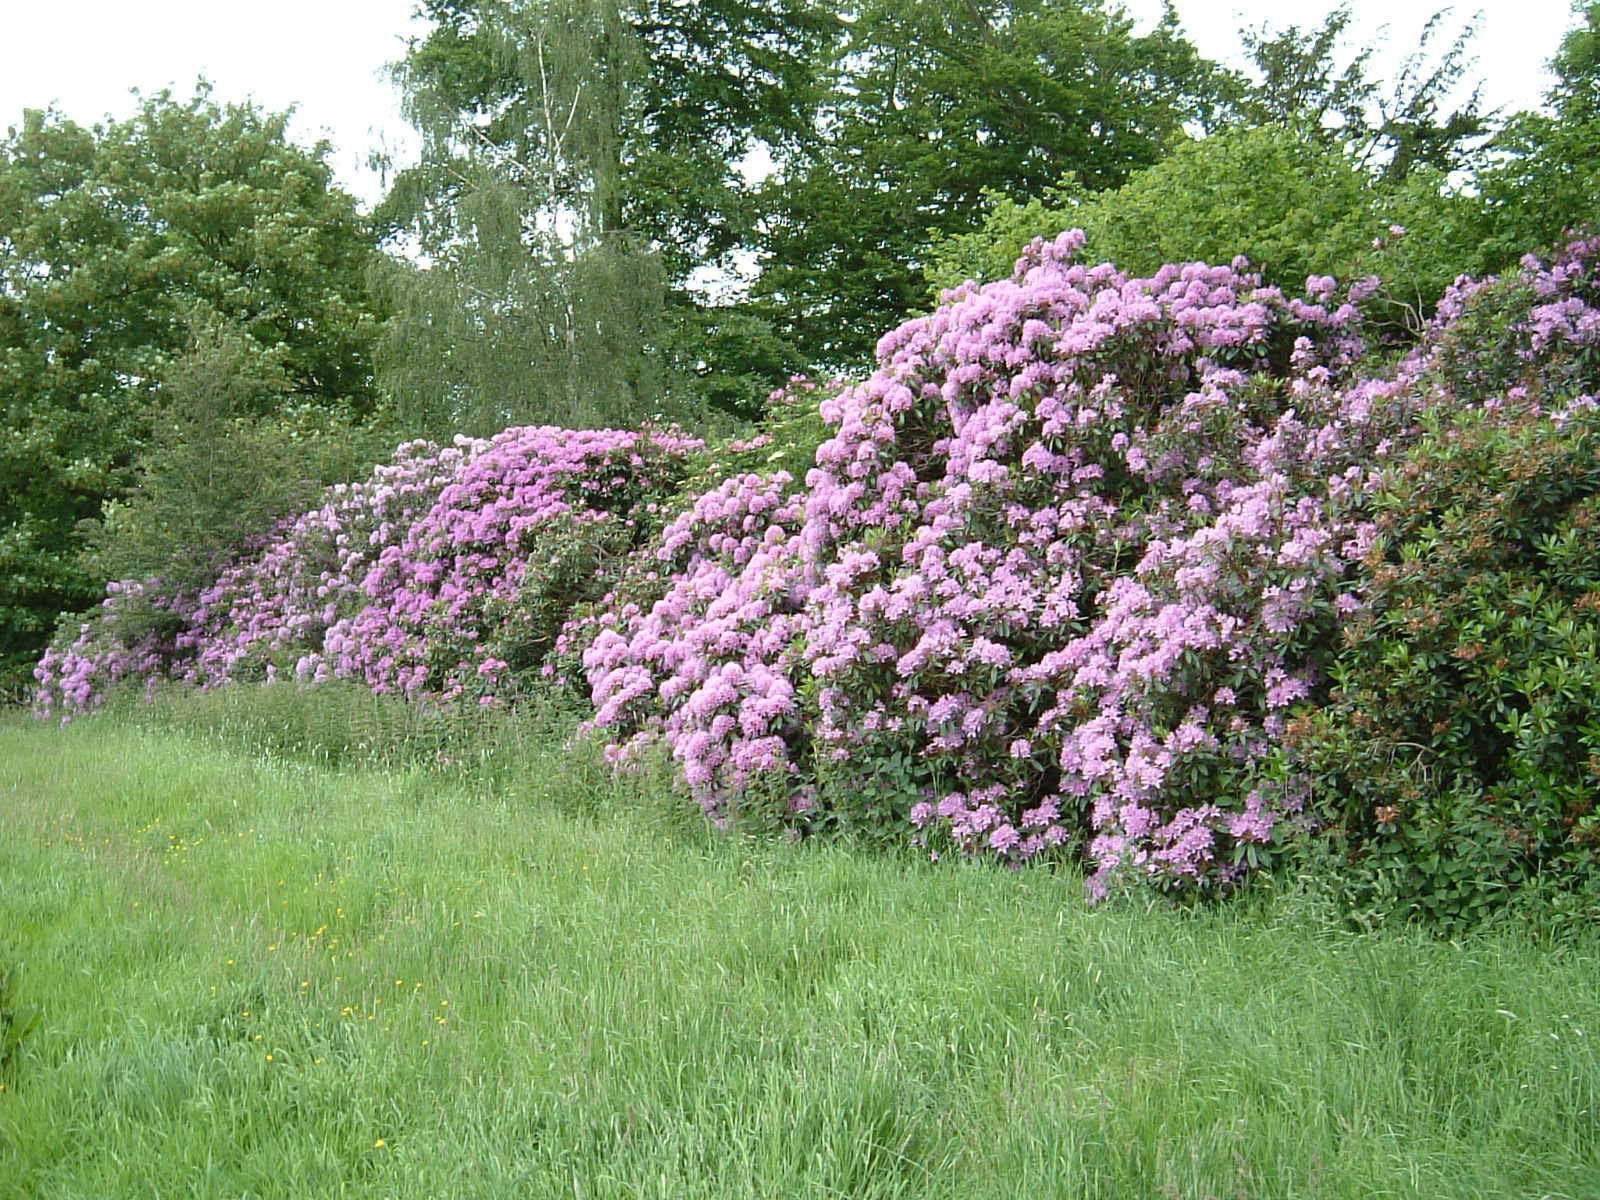 Rhododendrons by the River Dove